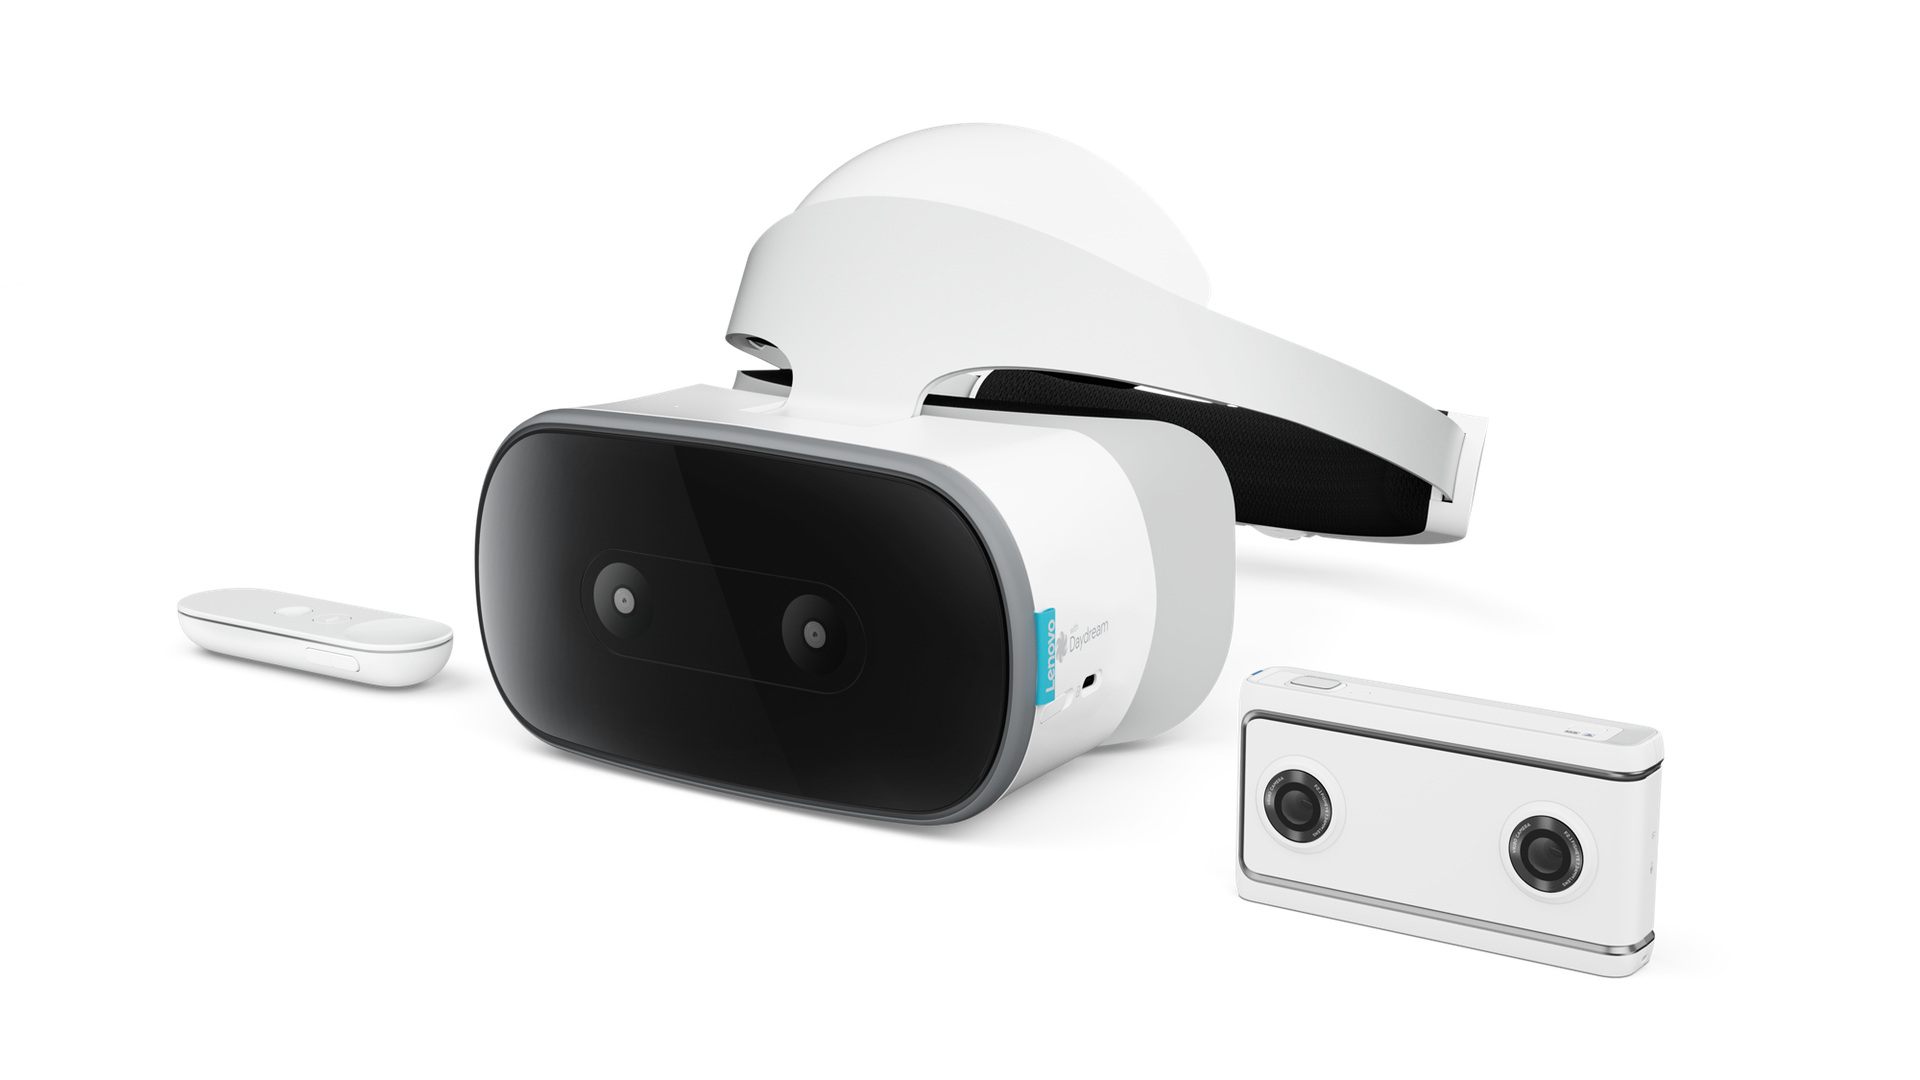 Lenovo's new standalone VR headset and 180-degree camera, developed with Google